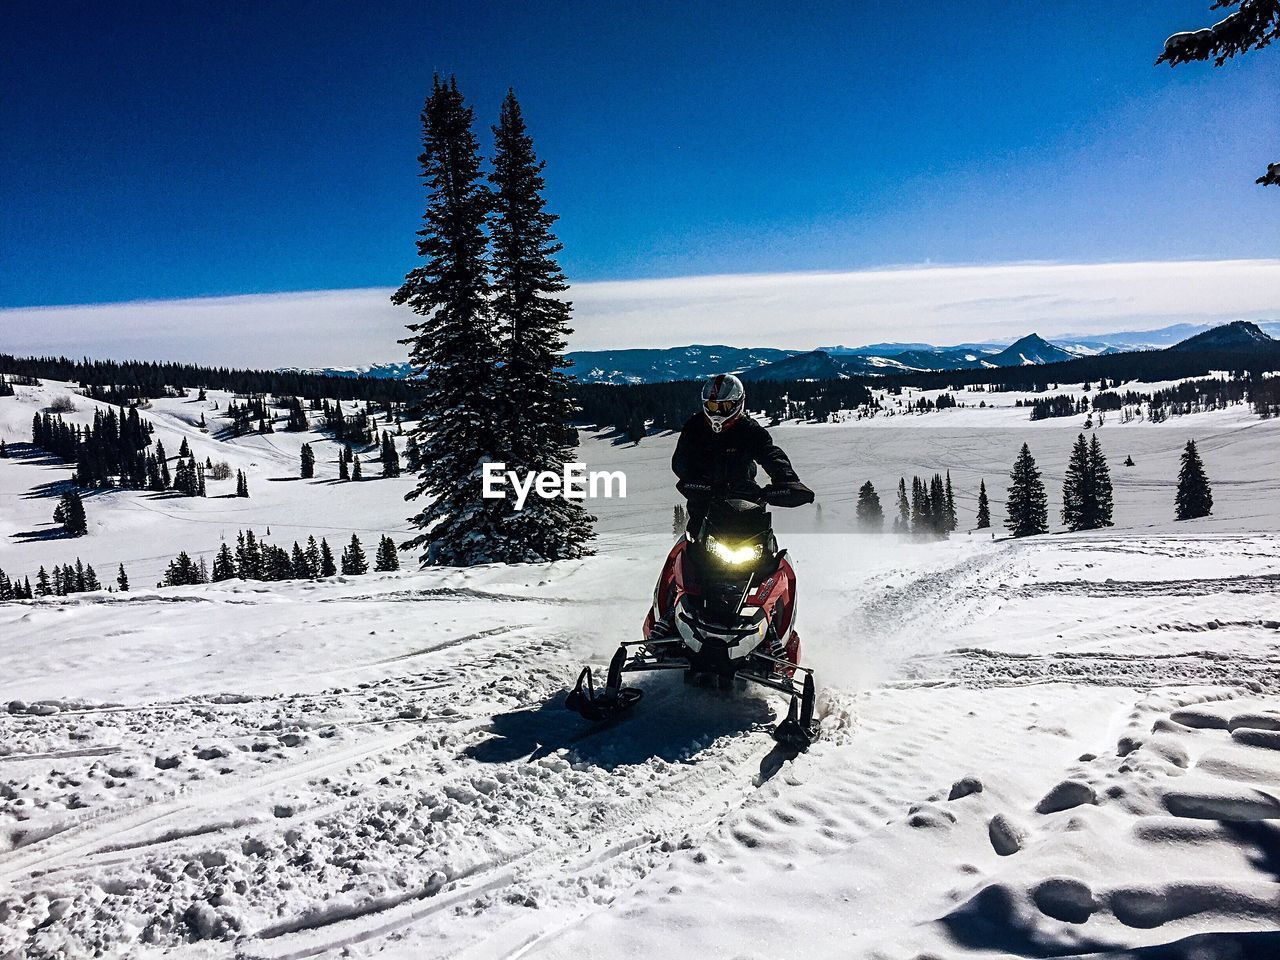 snow, cold temperature, winter, mountain, sky, covering, tree, beauty in nature, nature, real people, scenics - nature, plant, white color, mountain range, day, sport, winter sport, sunlight, leisure activity, snowcapped mountain, warm clothing, outdoors